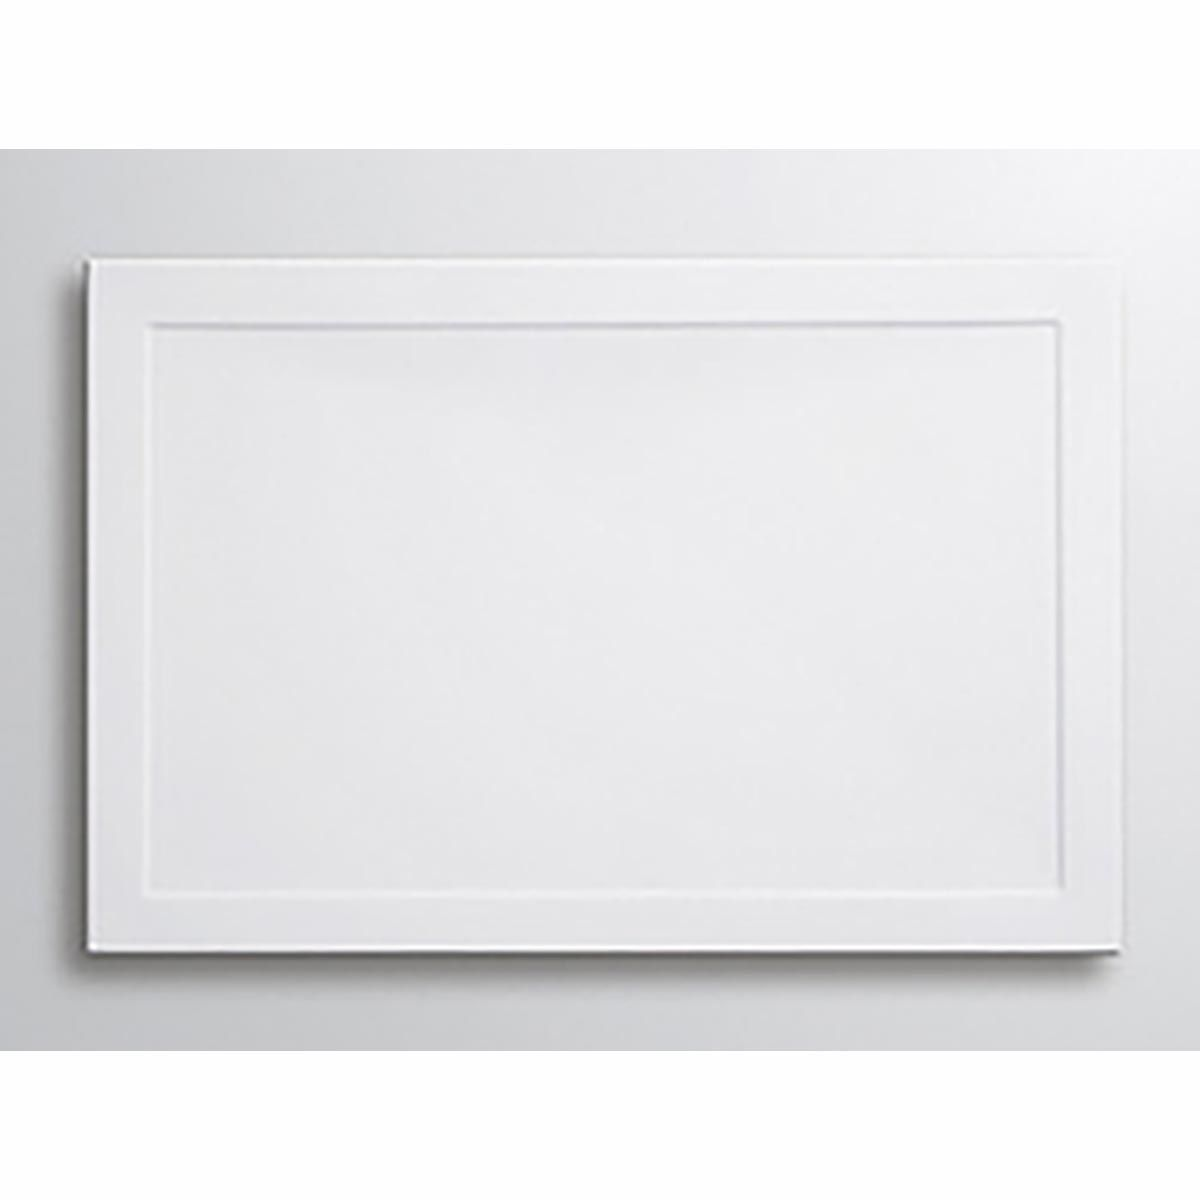 Lakes White Low Profile Rectangular ABS Tray 1000mm X 900mm